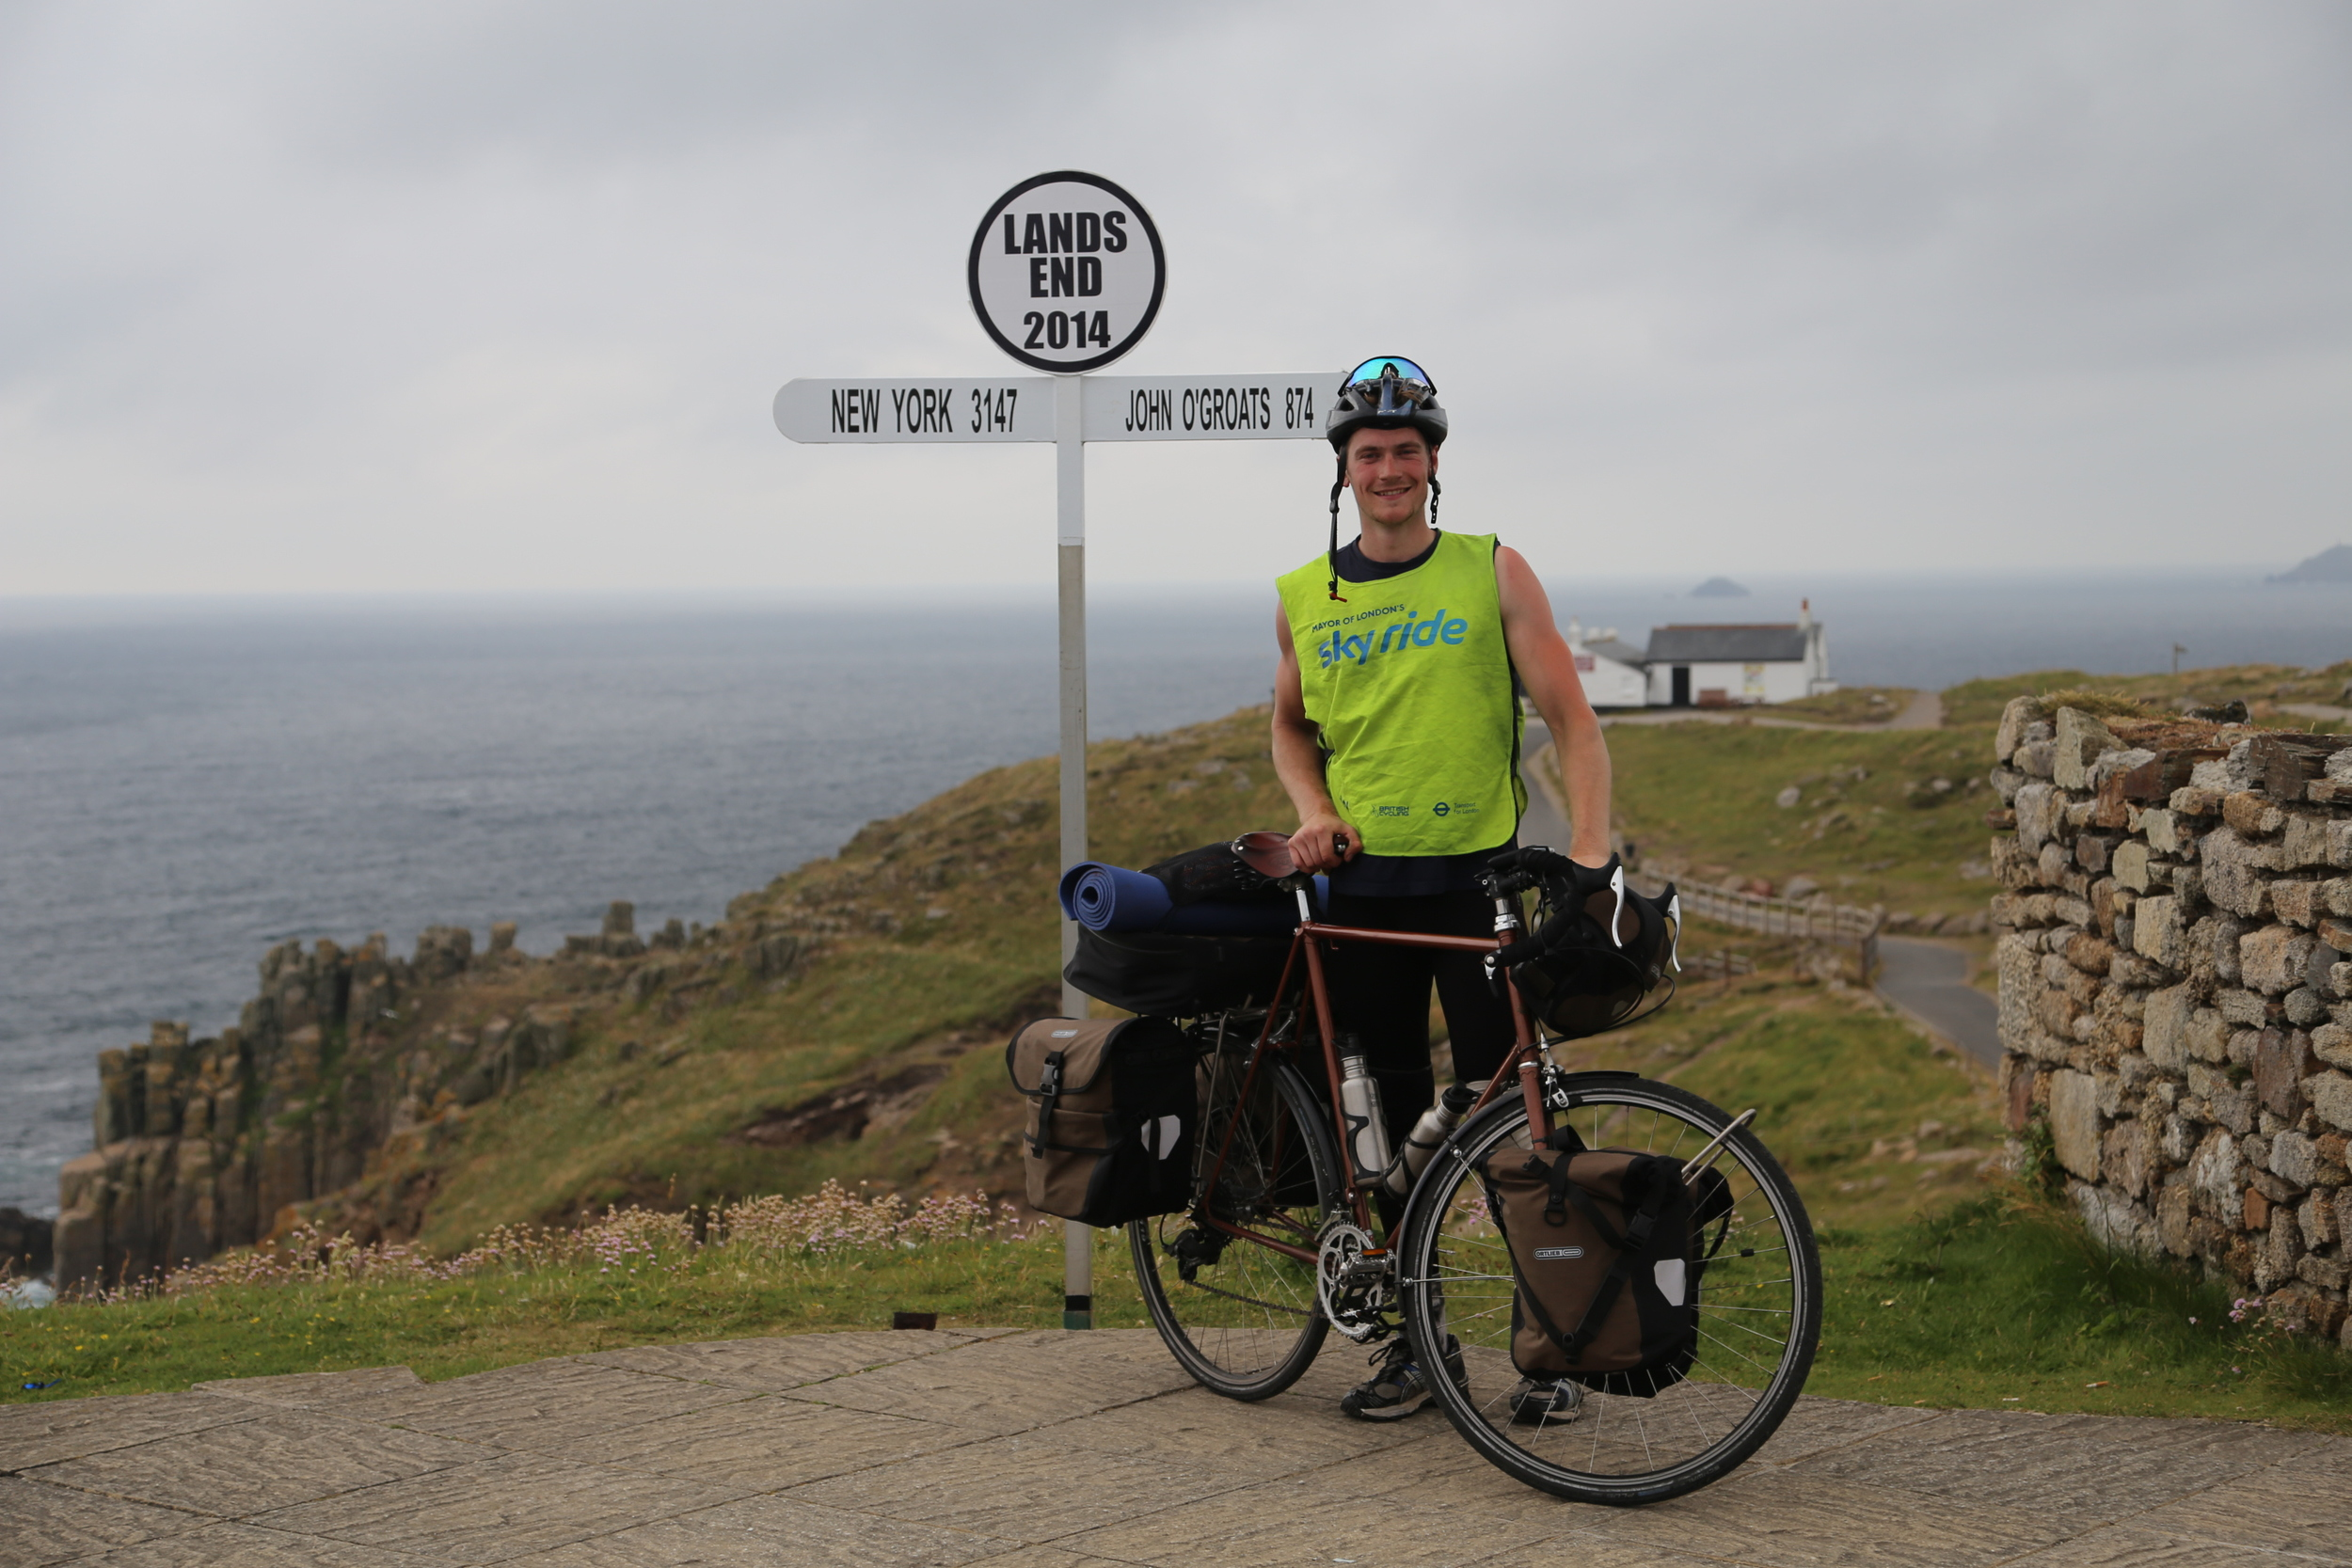 lands end, lejog, touring bikes, bike gear, adventure cycling, ride, bikepacking, cycle routes, touring bicycles